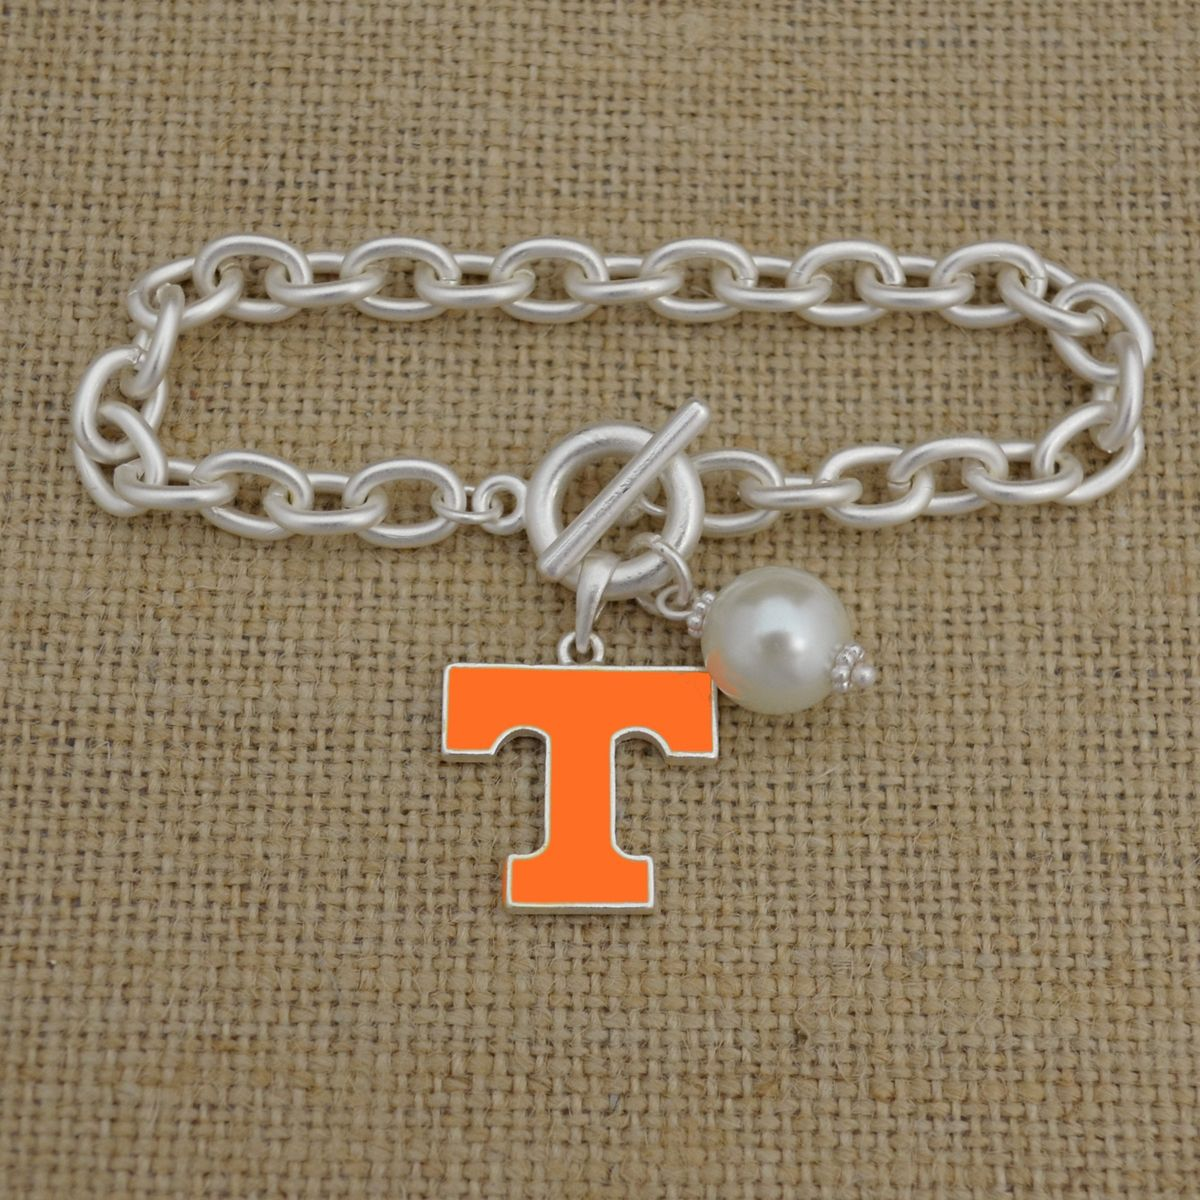 Tennessee Volunteers Logo and Pearl Toggle Bracelet, $9.98 // Go Vols! ♥